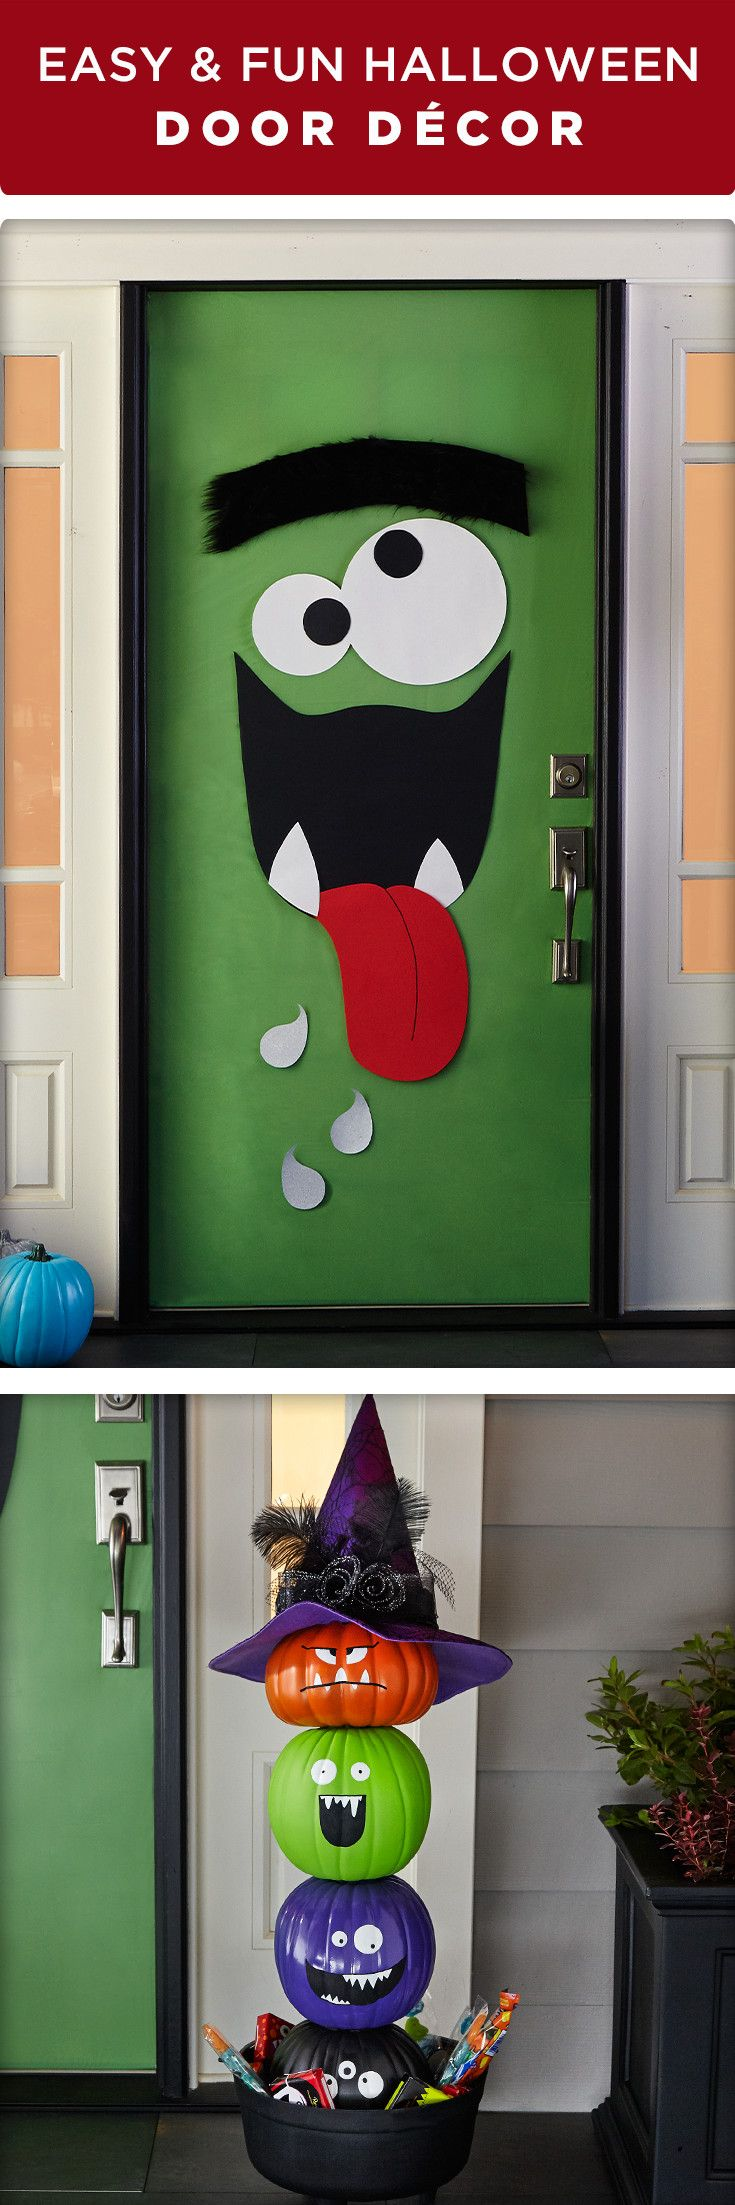 decorate your front door for trick or treaters this halloween these dcor ideas are easy - Michaels Halloween